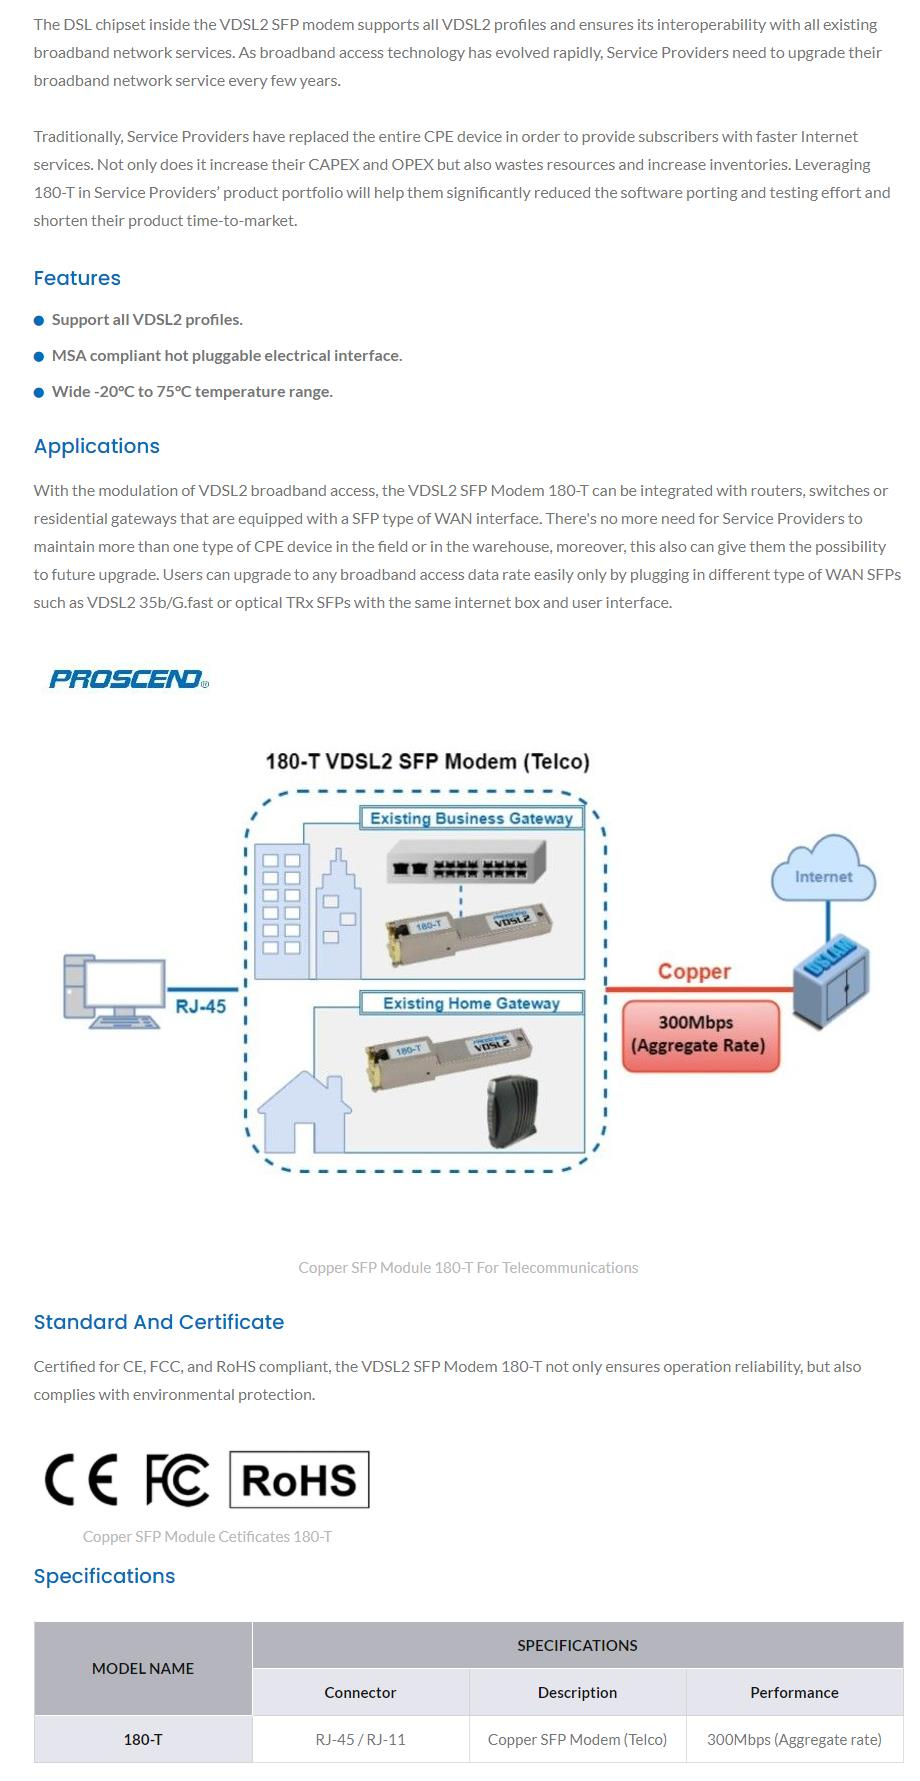 A large marketing image providing additional information about the product Proscend SFP VDSL2 Modem Suit Ubiquiti Devices - Additional alt info not provided